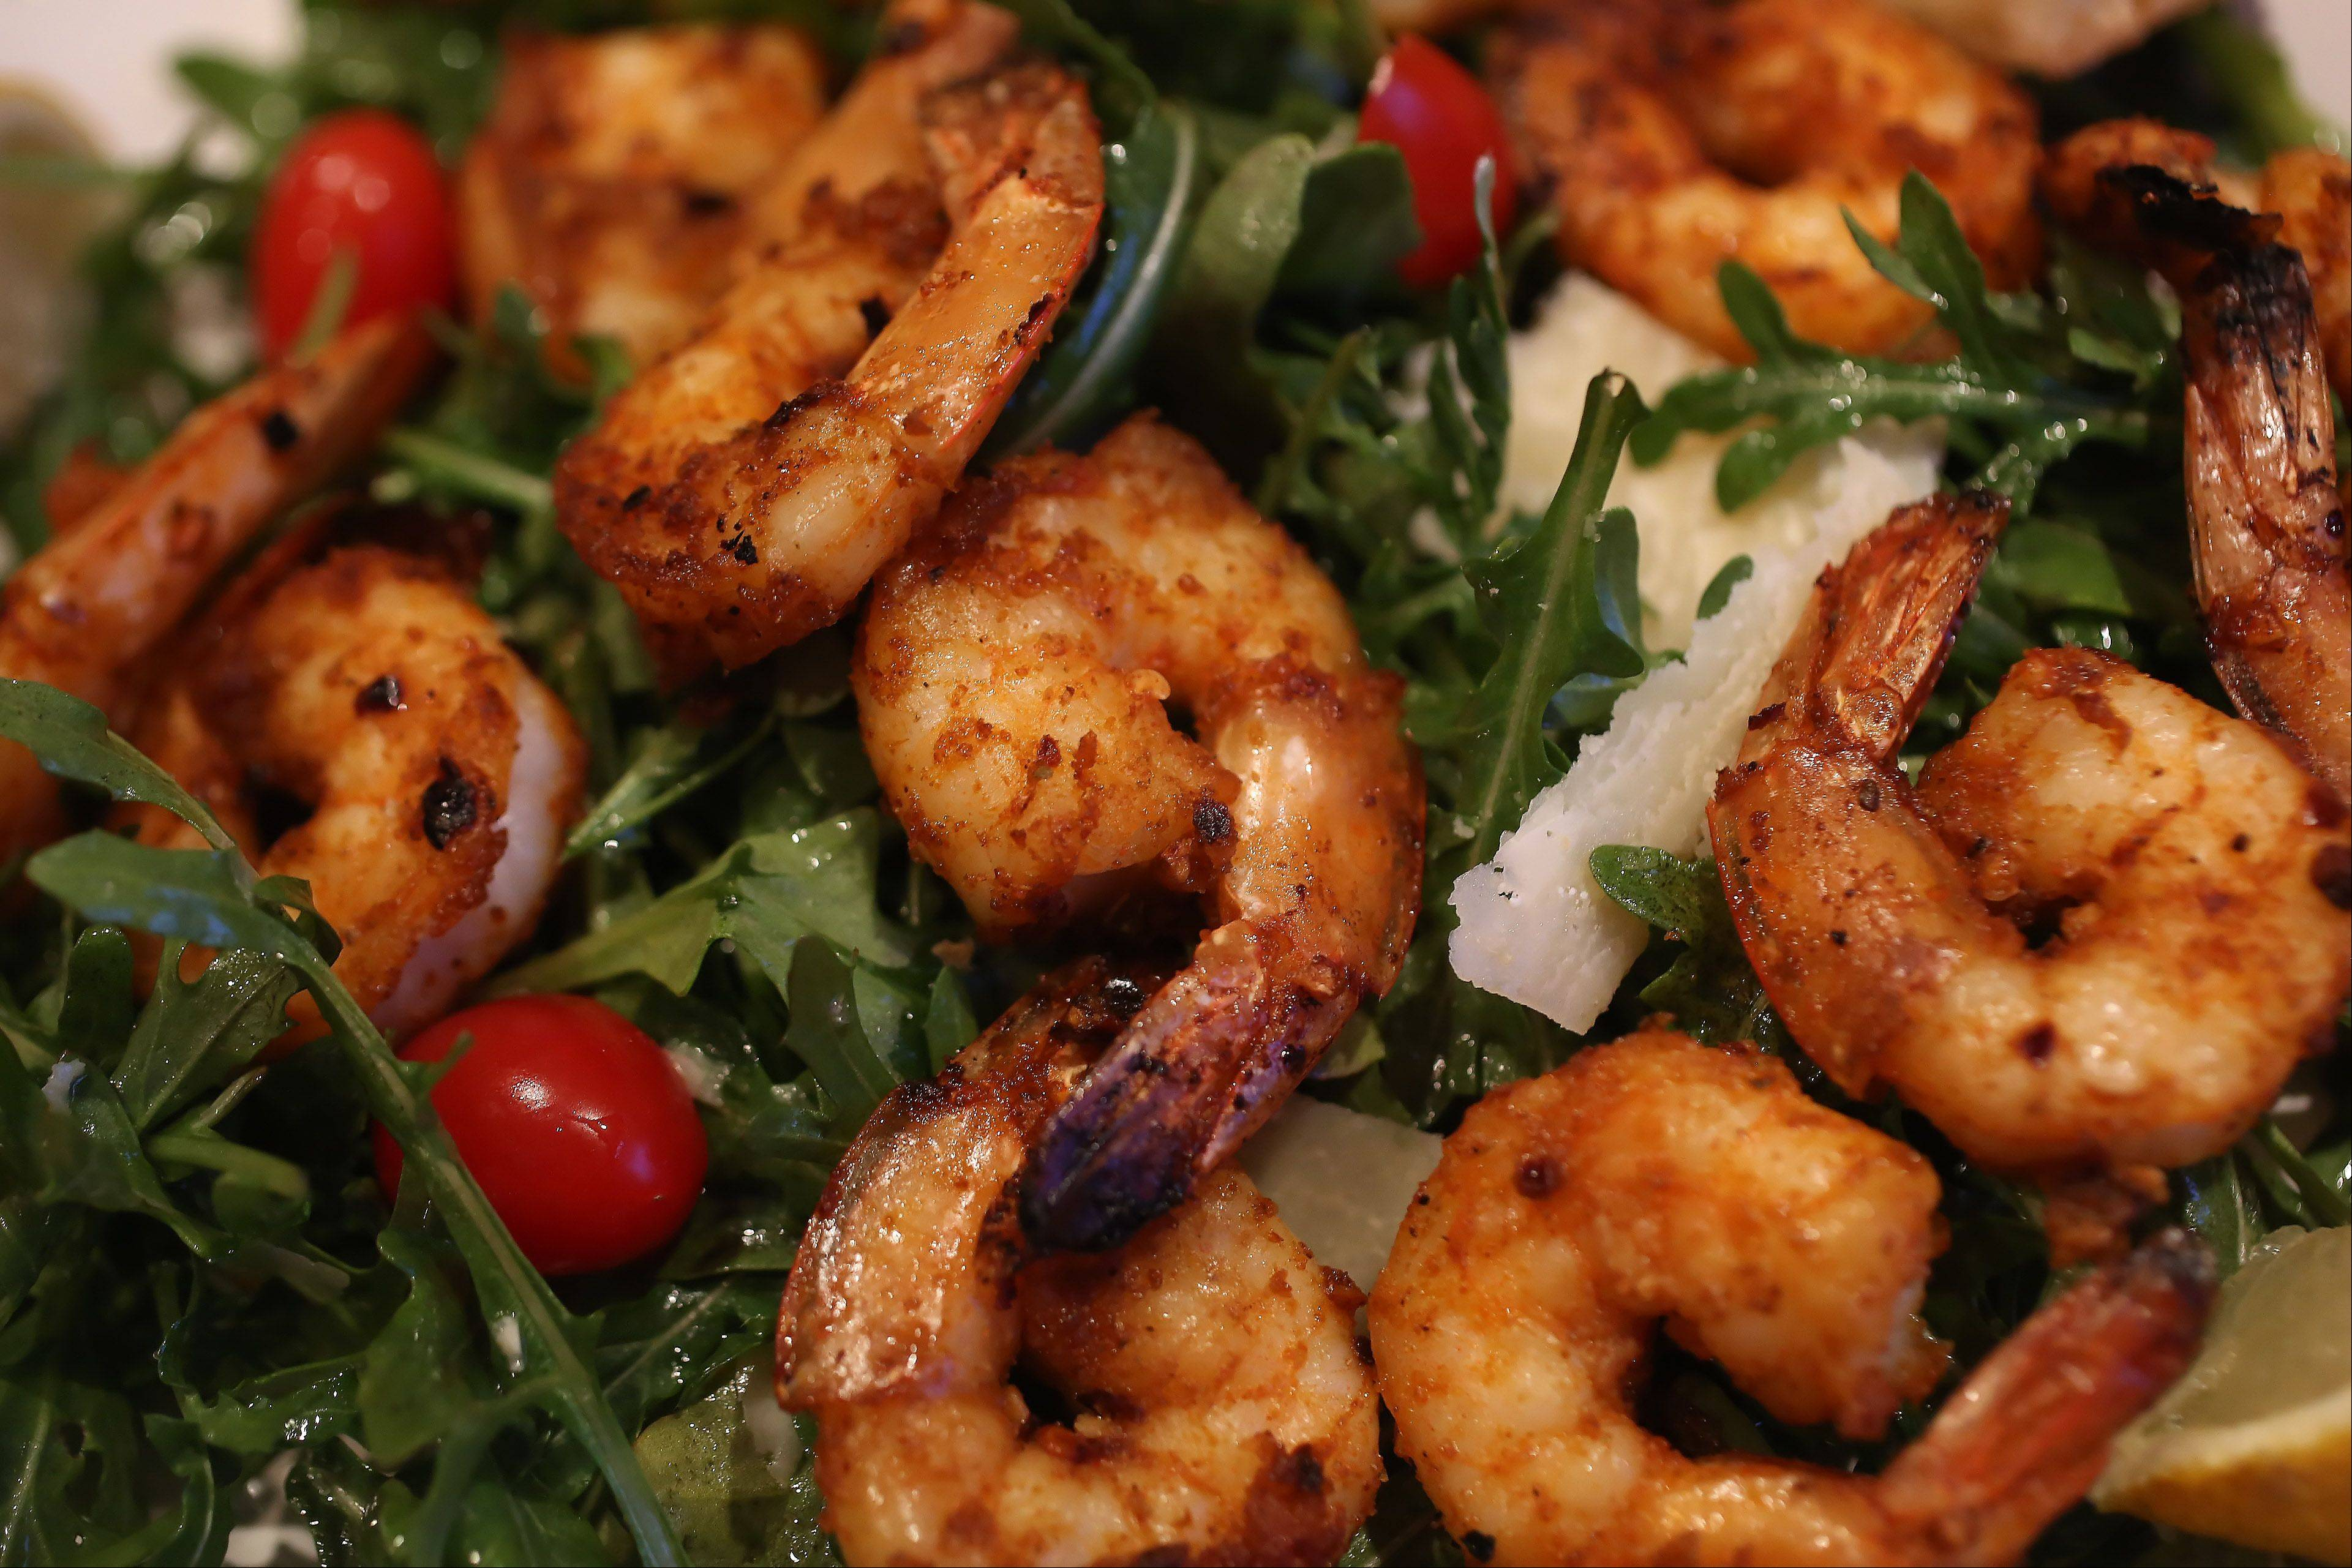 Theresa Zagnoli and her son Joe, 10, top a simple arugula salad with spicy shrimp for a quick and healthy meal.